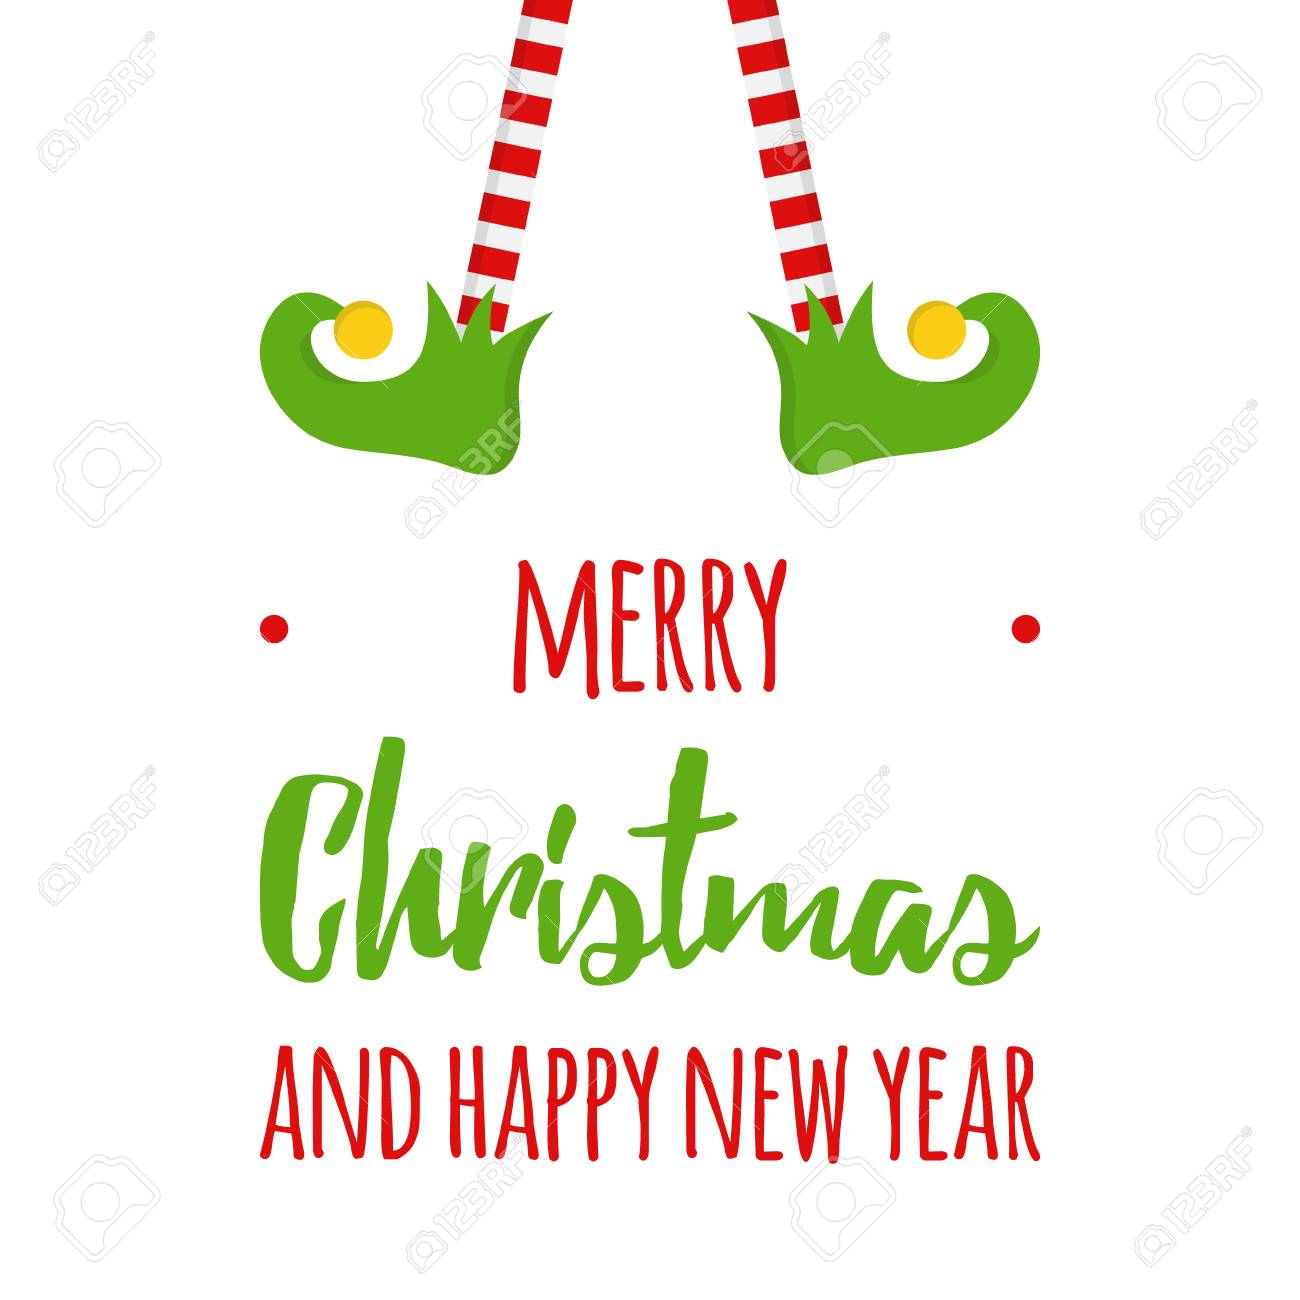 merry christmas and happy new year vector graphic illustration royalty free cliparts vectors and stock illustration image 119438966 merry christmas and happy new year vector graphic illustration